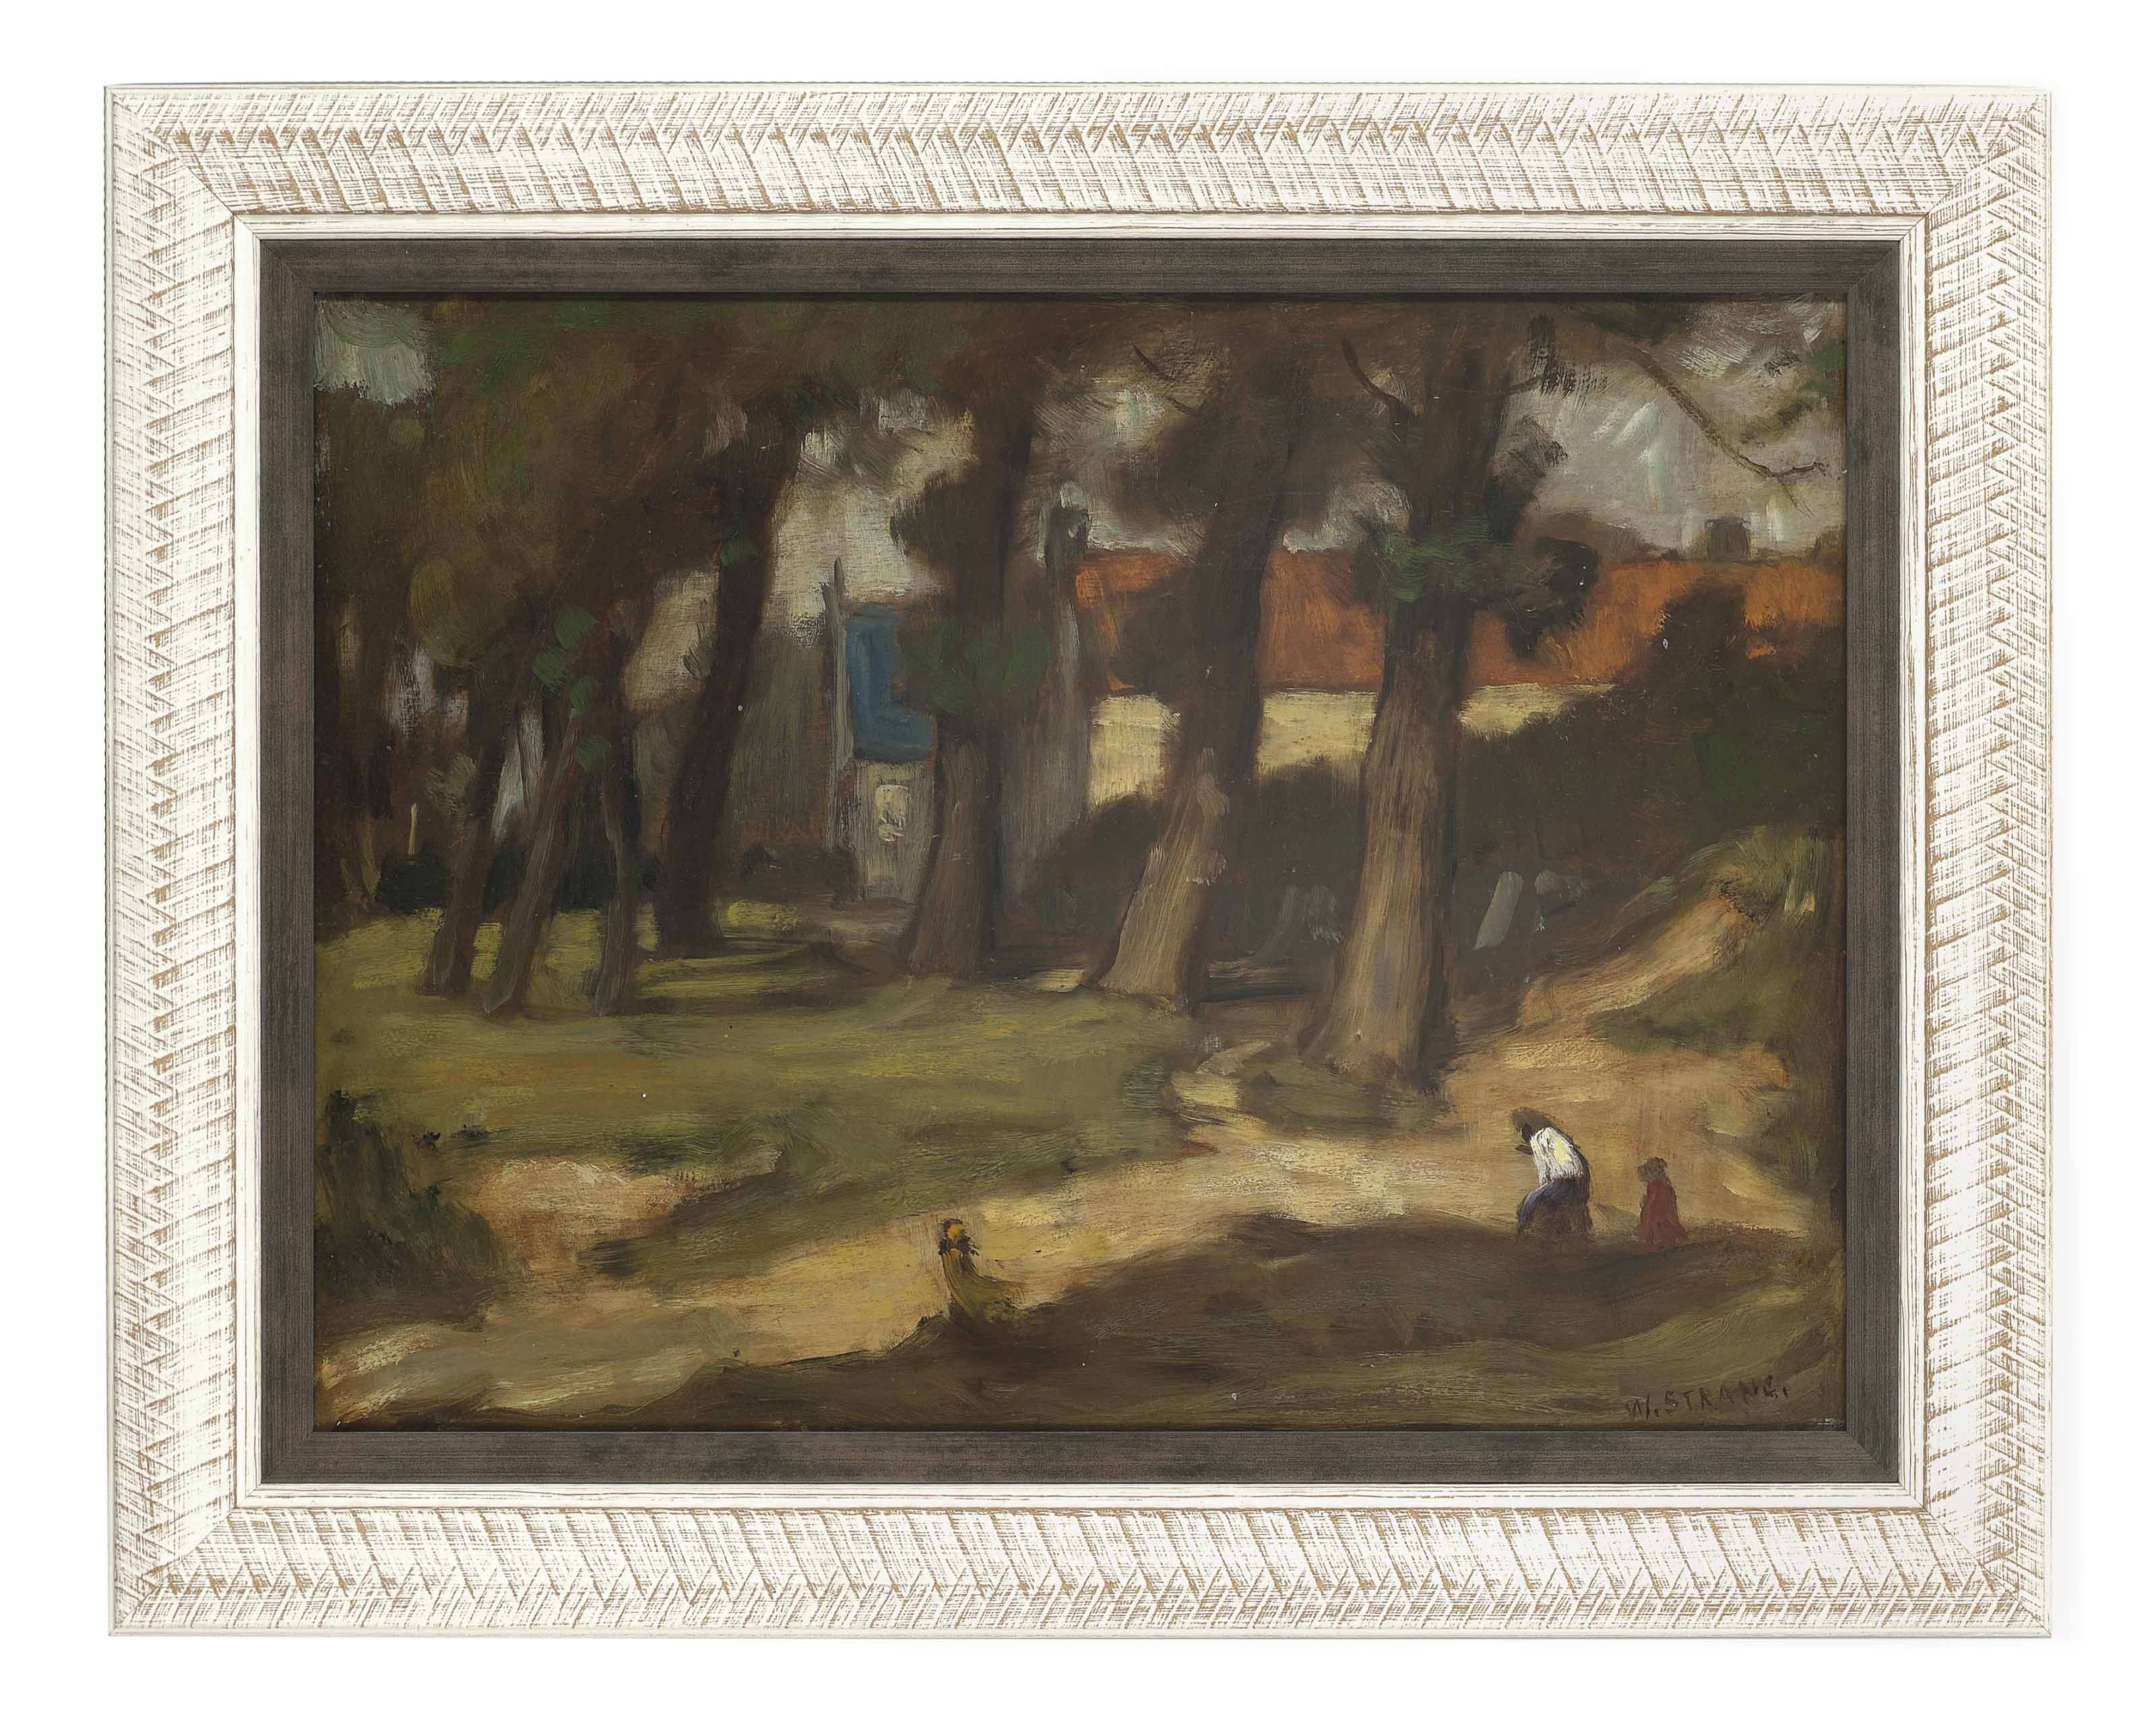 Figures in a woodland